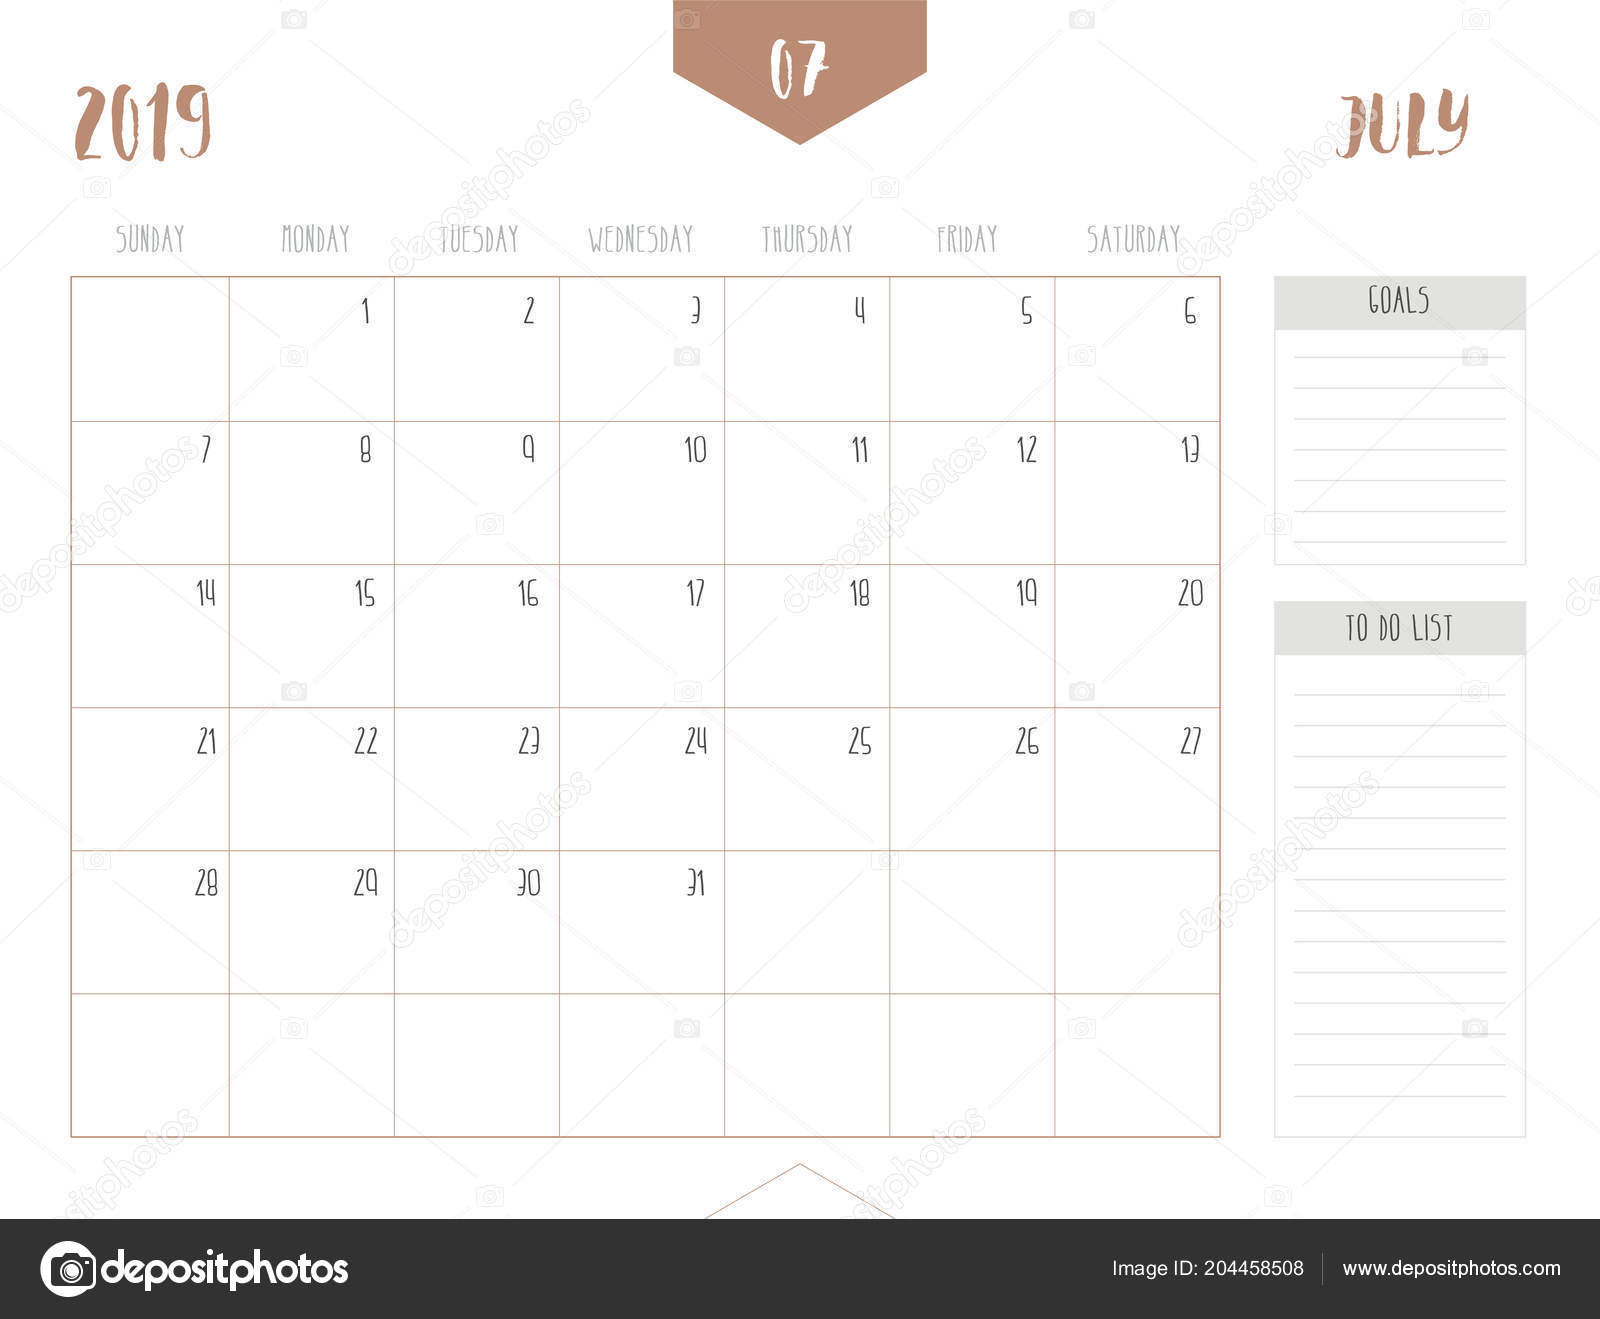 Calendario 2019 Julio.Vector Calendario 2019 Julio Estilo Tabla Limpia Simple Con